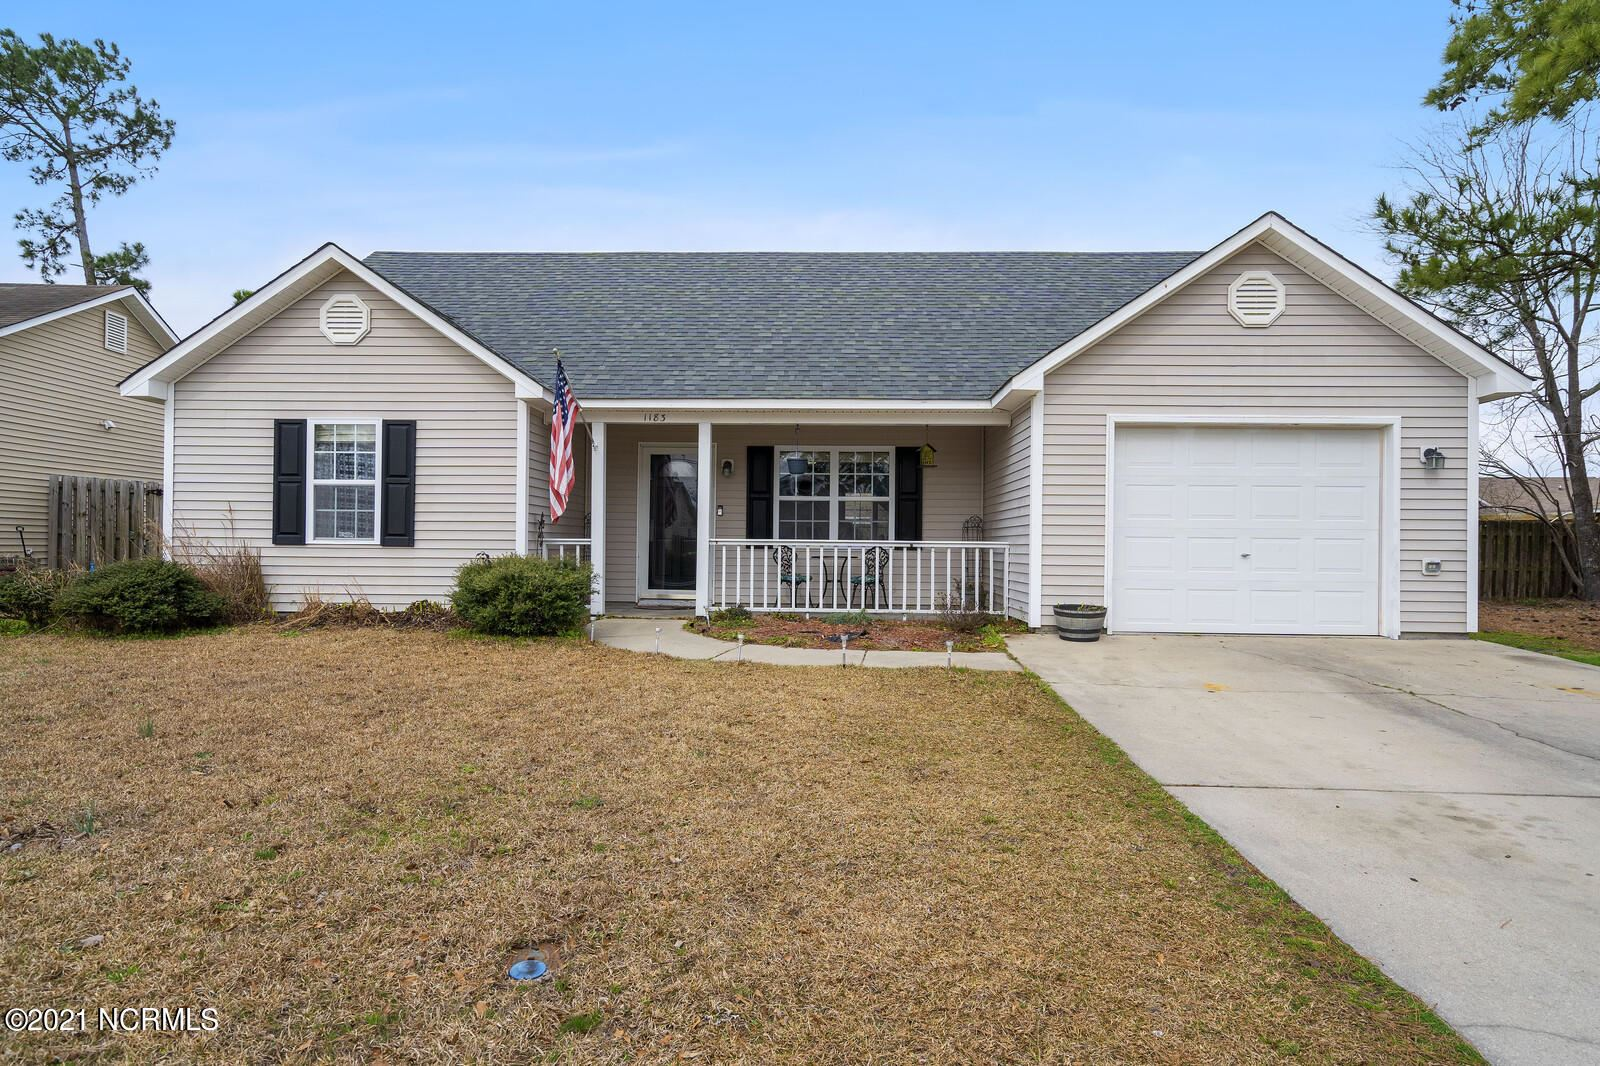 Photo for 1183 Amber Pines Drive, Leland, NC 28451 (MLS # 100260076)